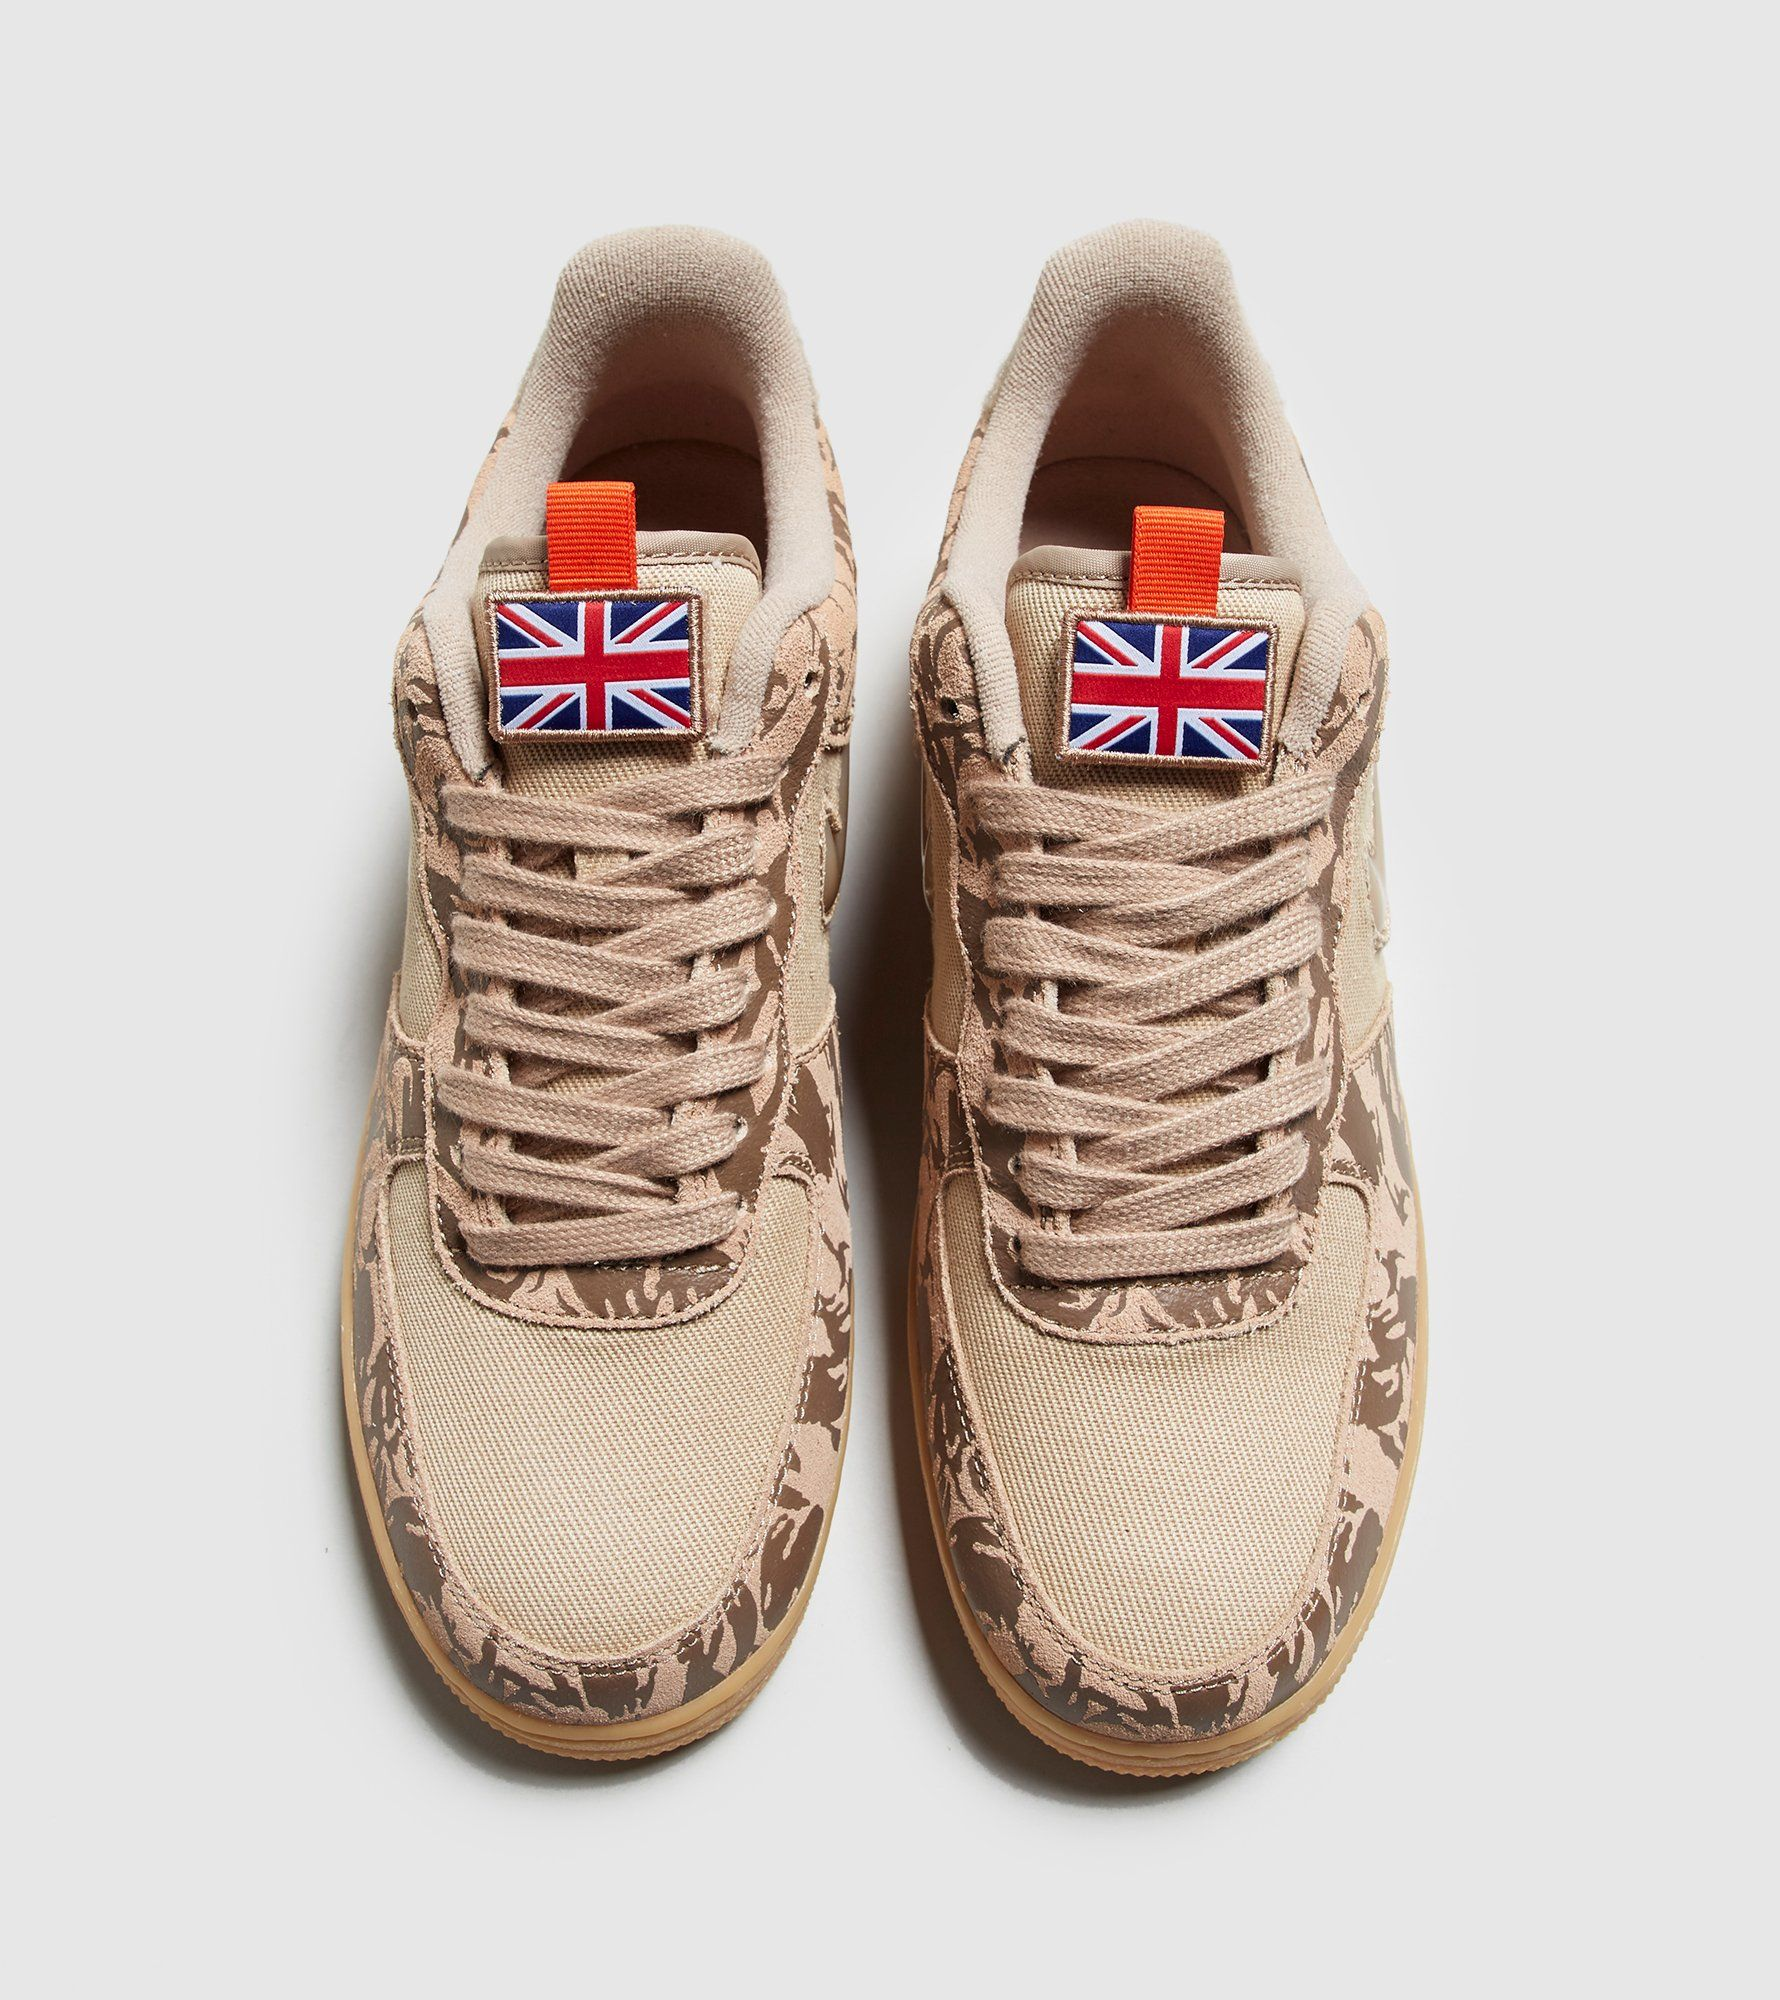 Nike Air Force 1 Jewel Low Camo 'UK'